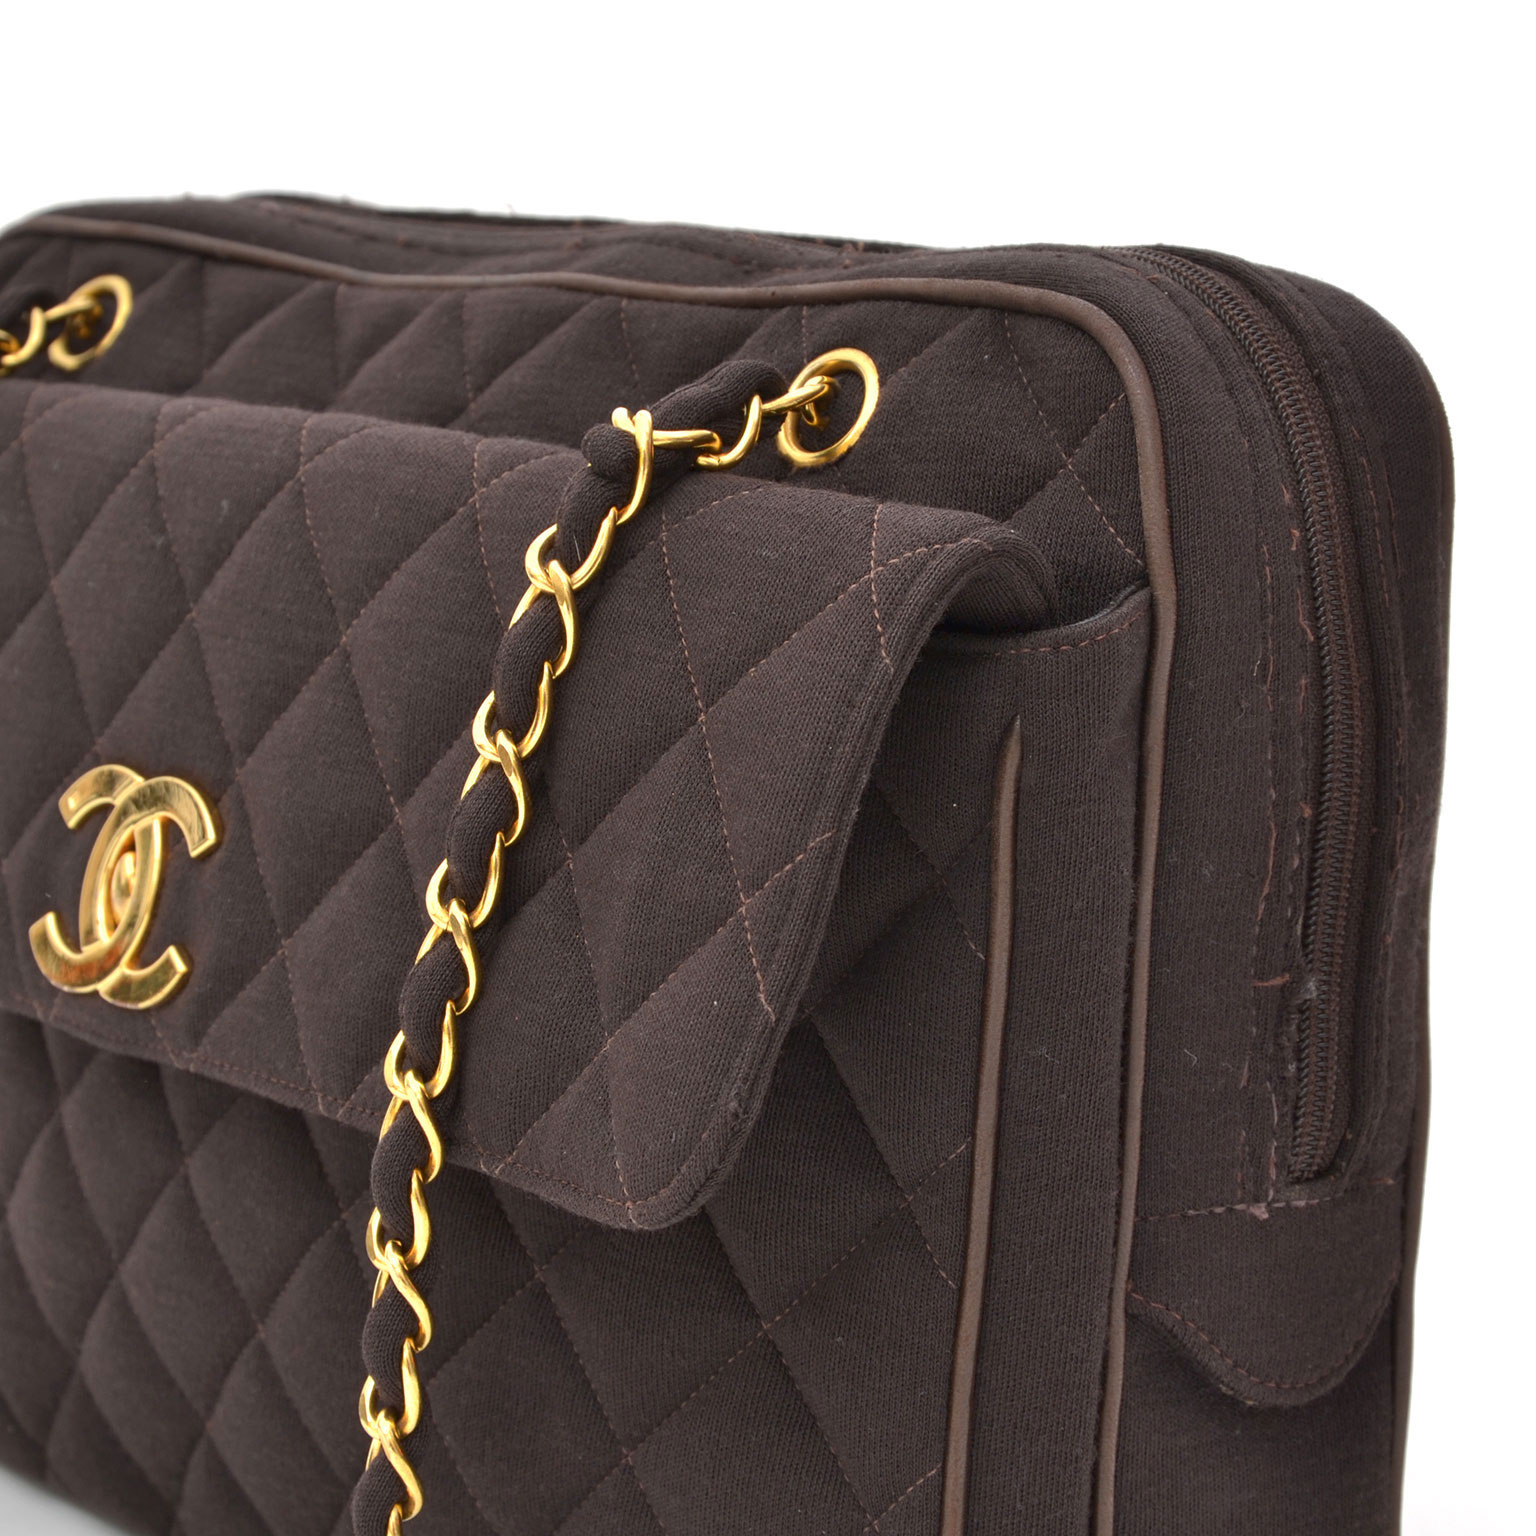 7852b3dea180 Shop secondhand authentic Chanel handbags at LabelLOV. Chanel Quilted Brown  Fabric Jersey Messenger Bag. Find authentic vintage Chanel handbags for the  ...